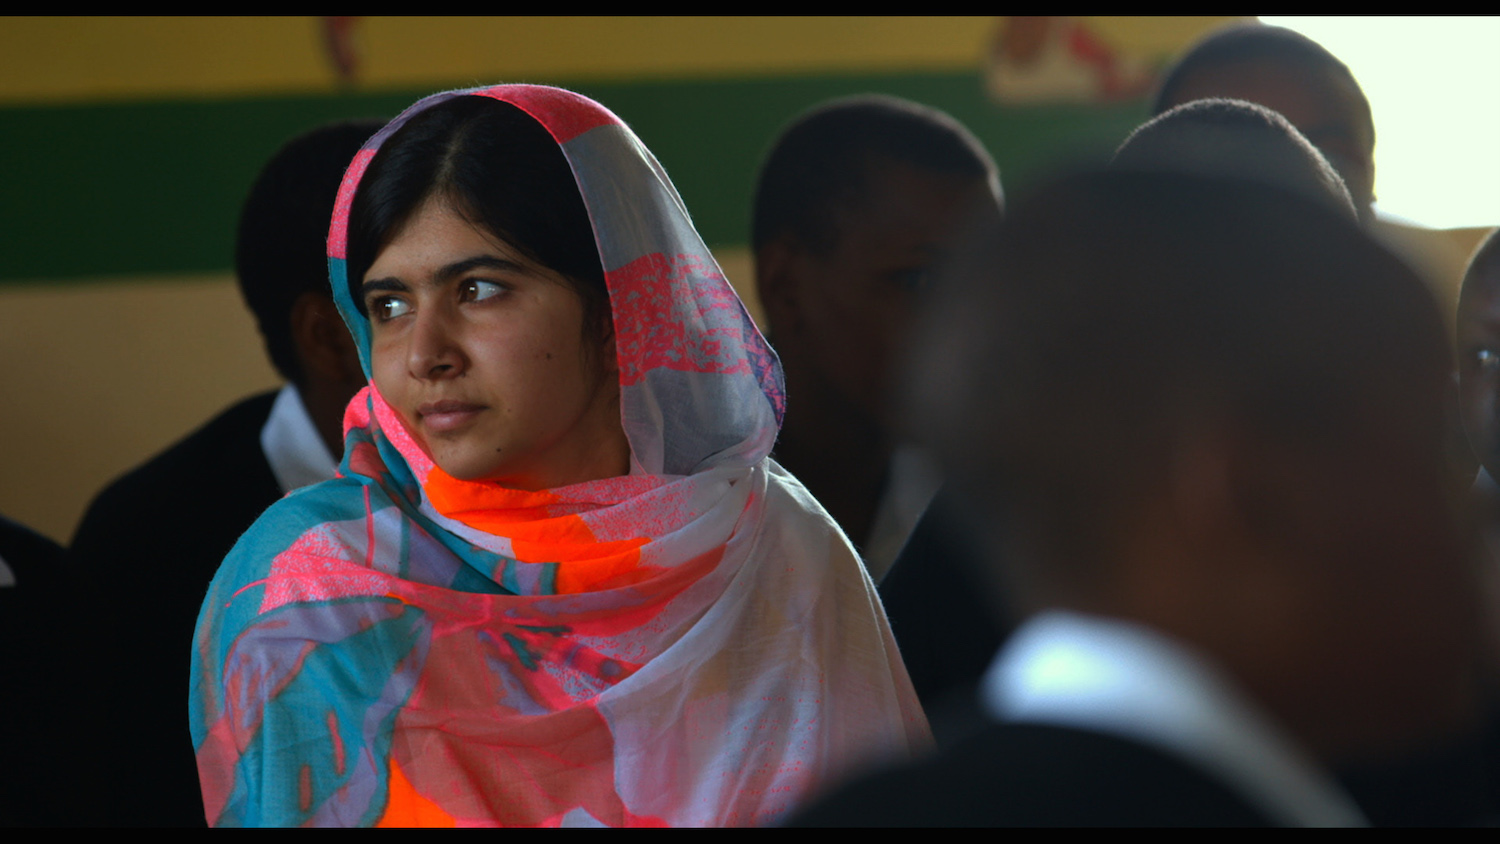 Watch Official Trailer for HE NAMED ME MALALA Documentary